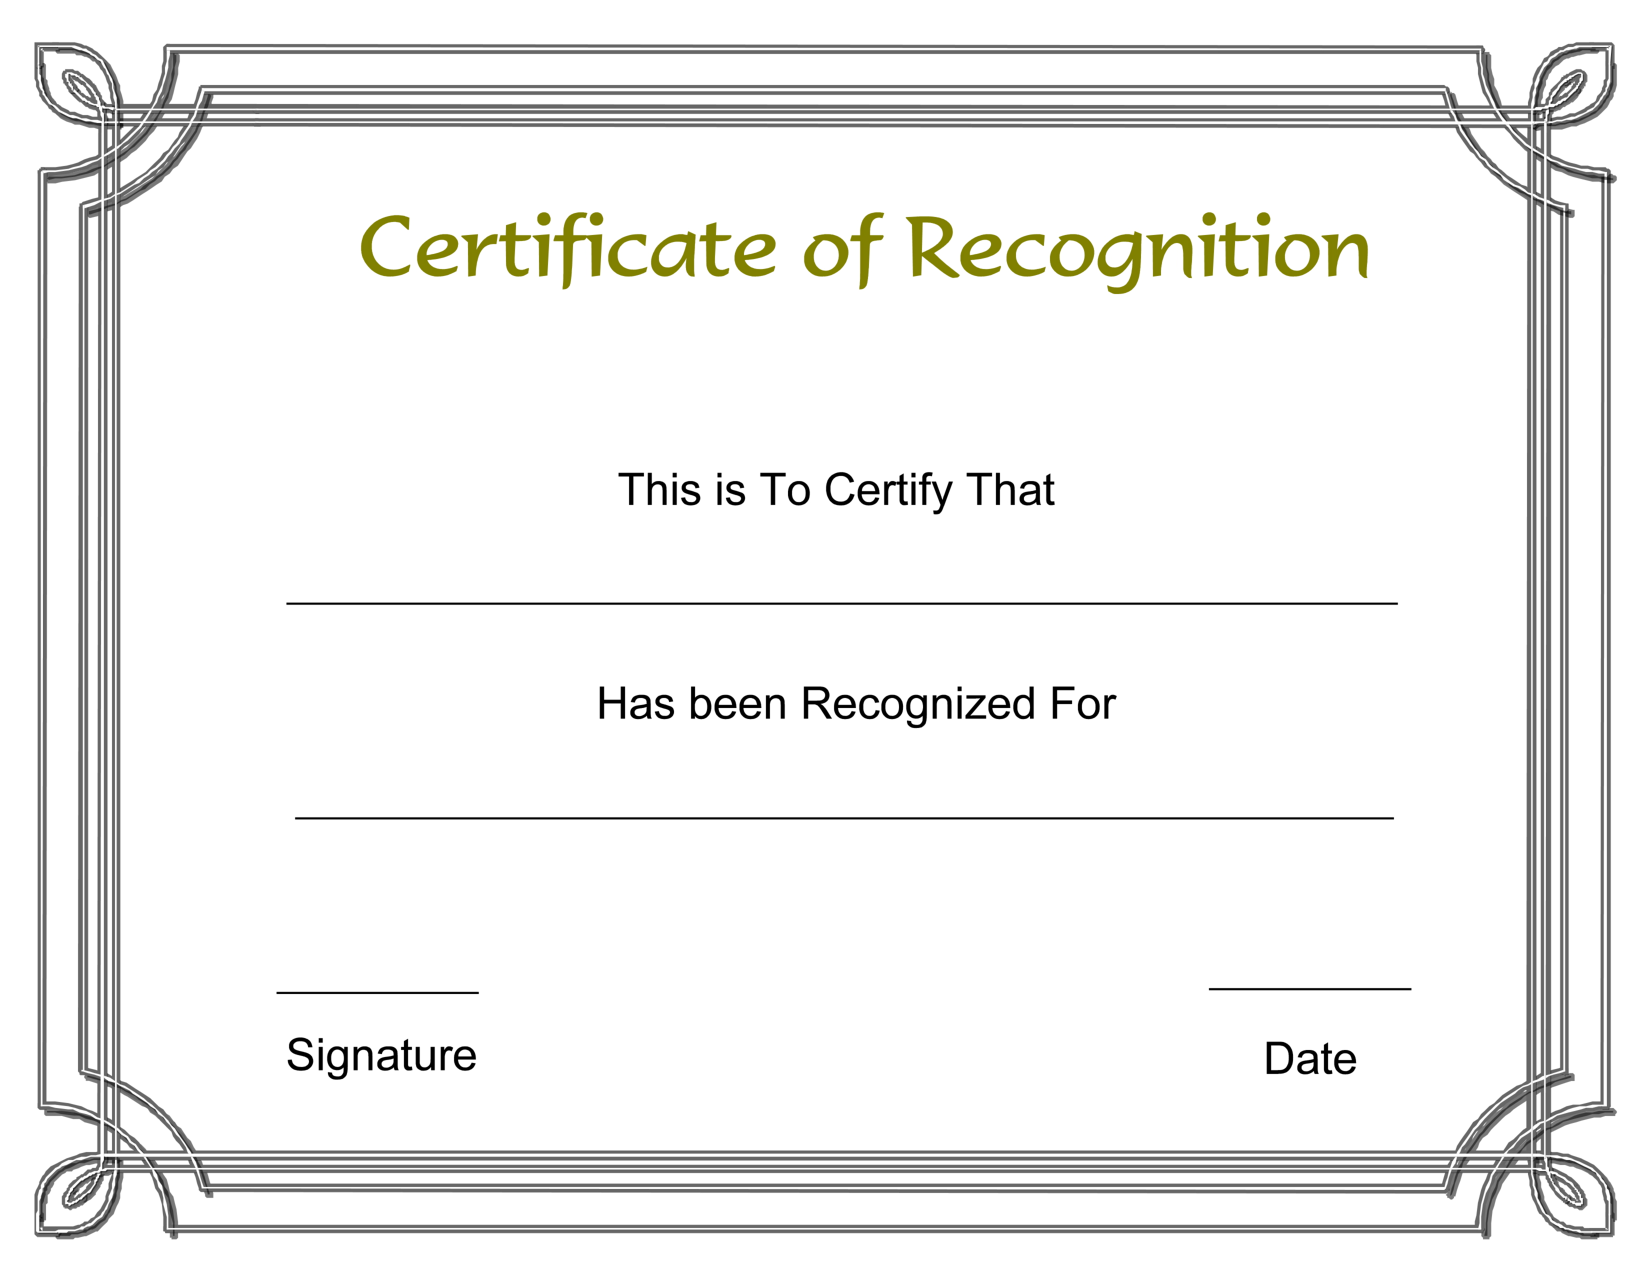 Template free award certificate templates and employee recognition template free award certificate templates and employee recognition printable appreciation yadclub Images